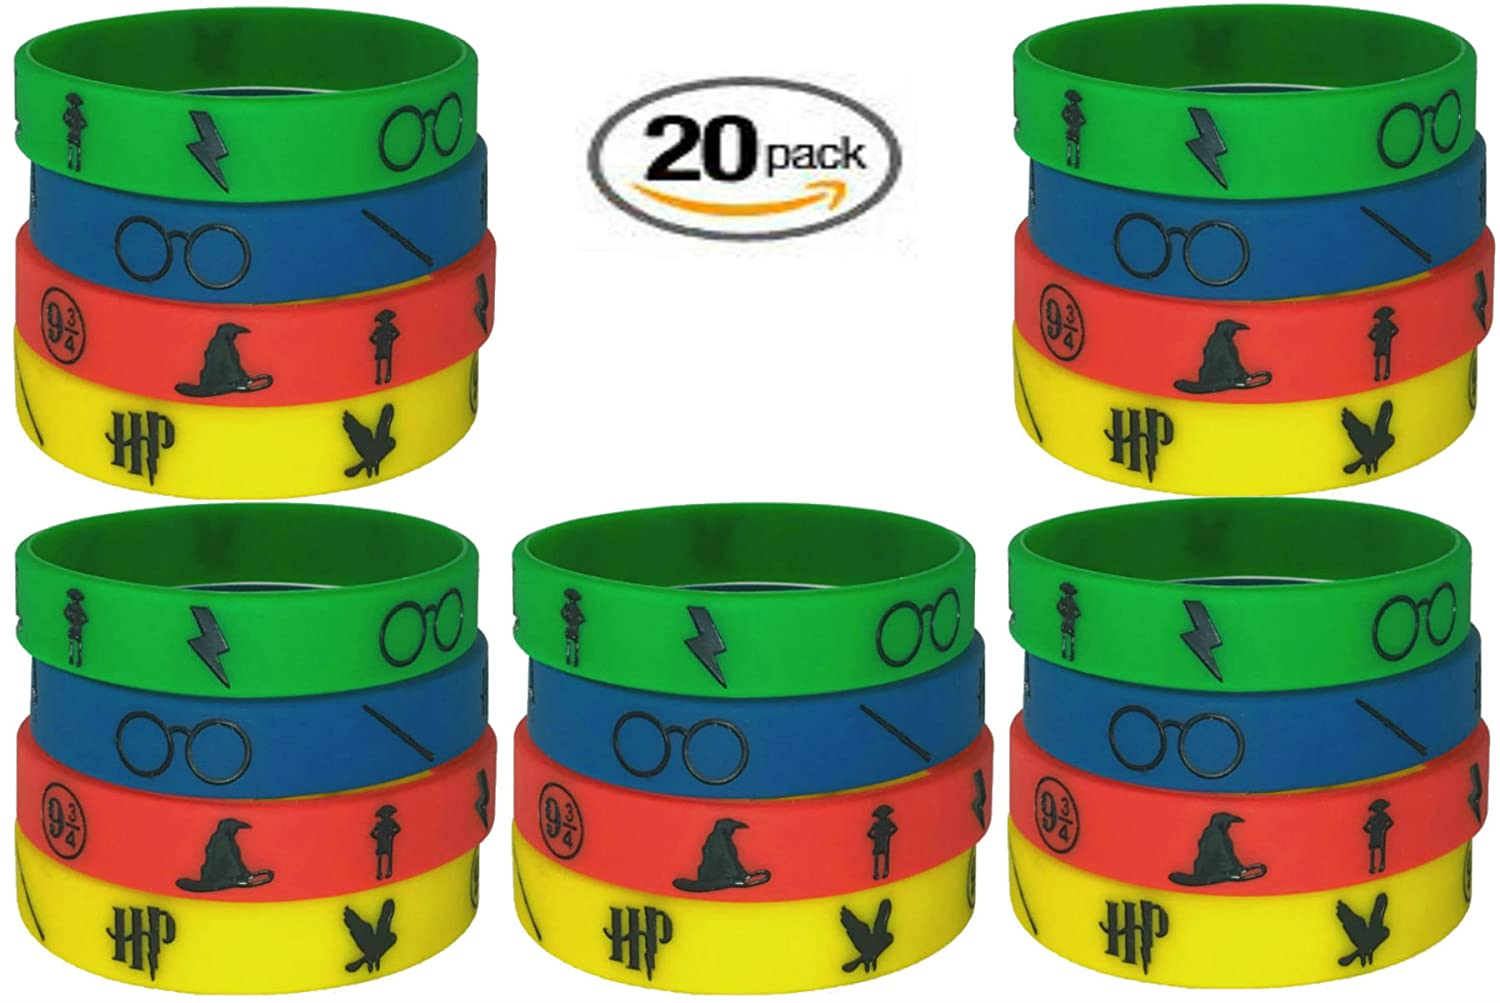 Child, Harry Potter 4 20 pc Harry Potter Silicon Wristbands BlueBell. Kids Party Favors